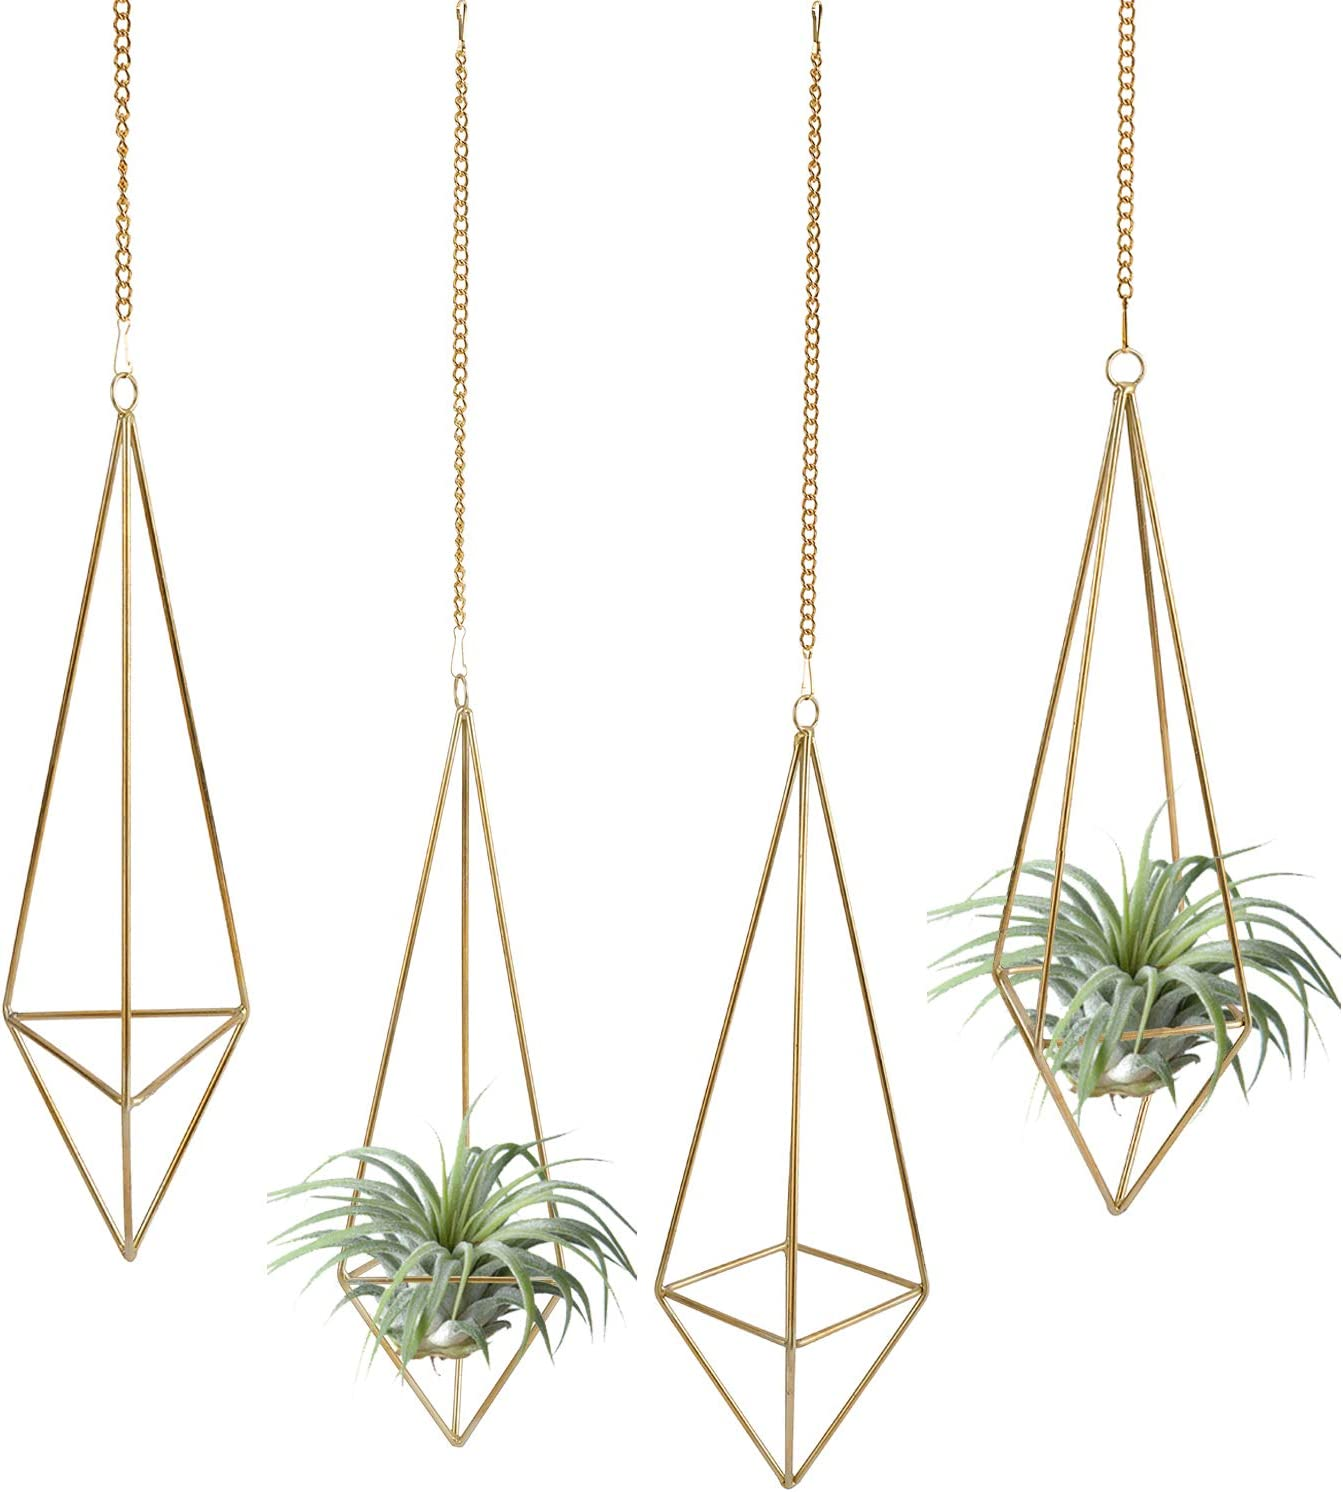 HighFree 4 Pack Omaha Mall Ranking TOP19 Hanging Air Plant Plants Metal Holder w Rack